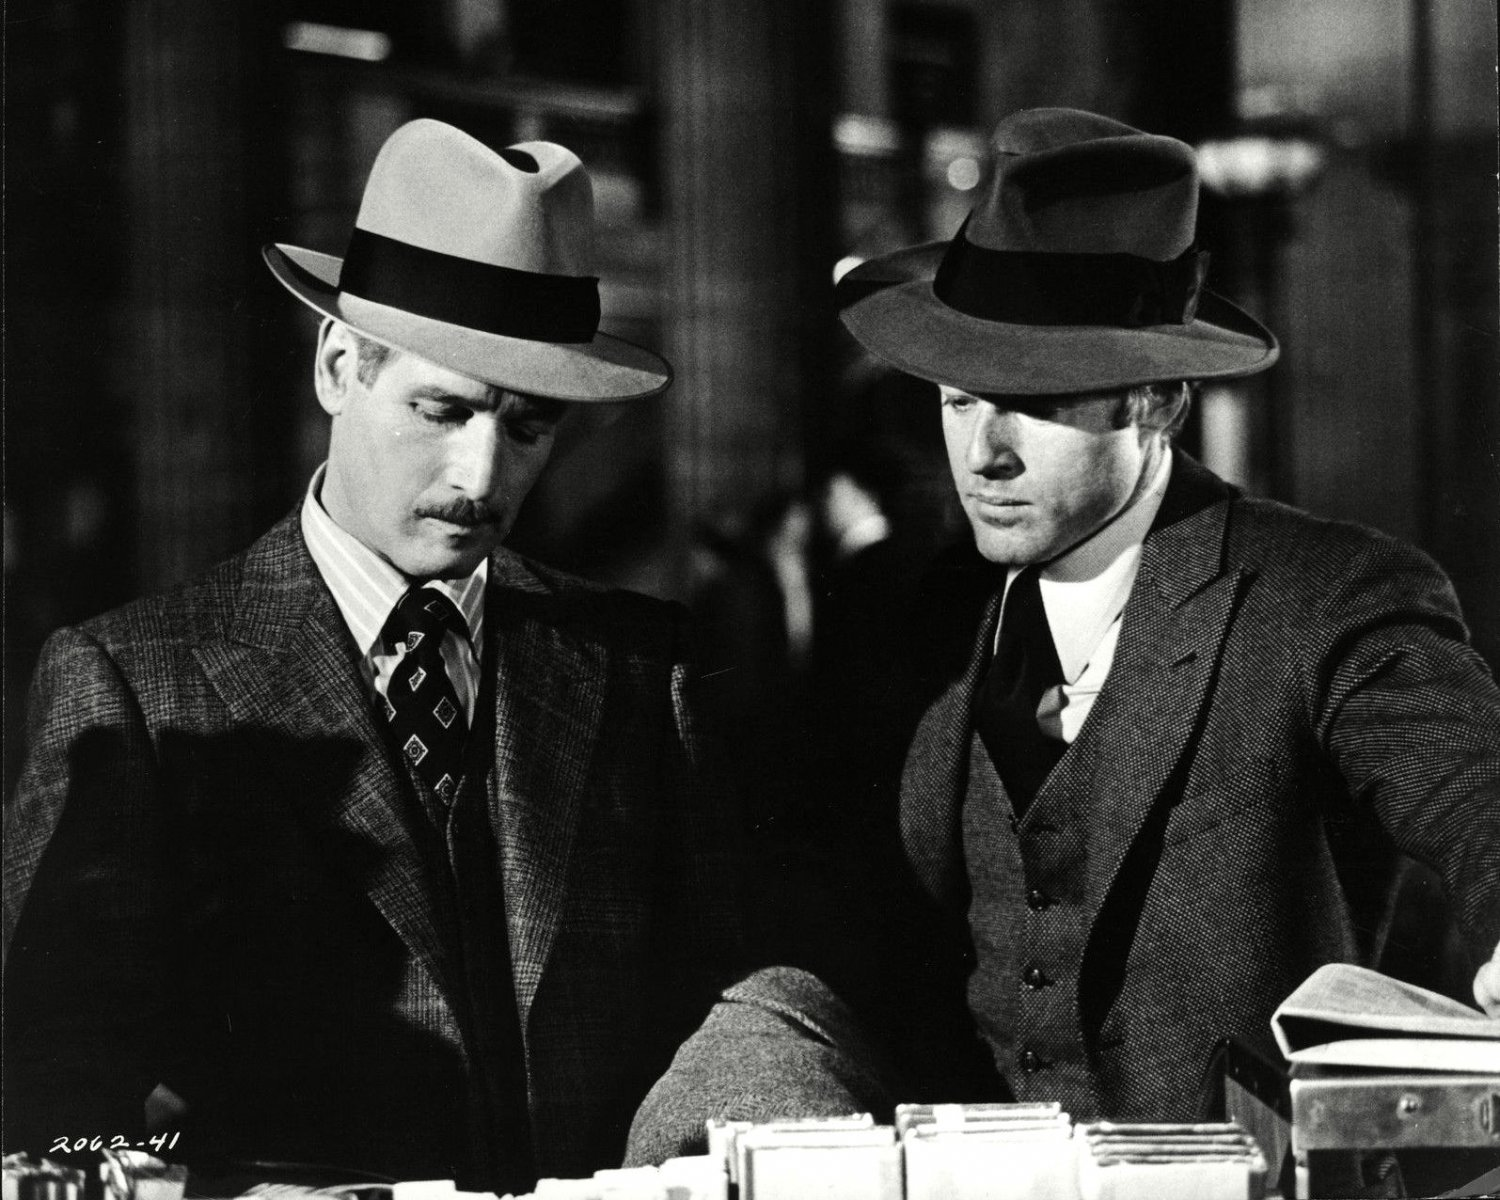 PAUL NEWMAN AND ROBERT REDFORD IN 'THE STING' - 8X10 PUBLICITY PHOTO (ZZ-487)